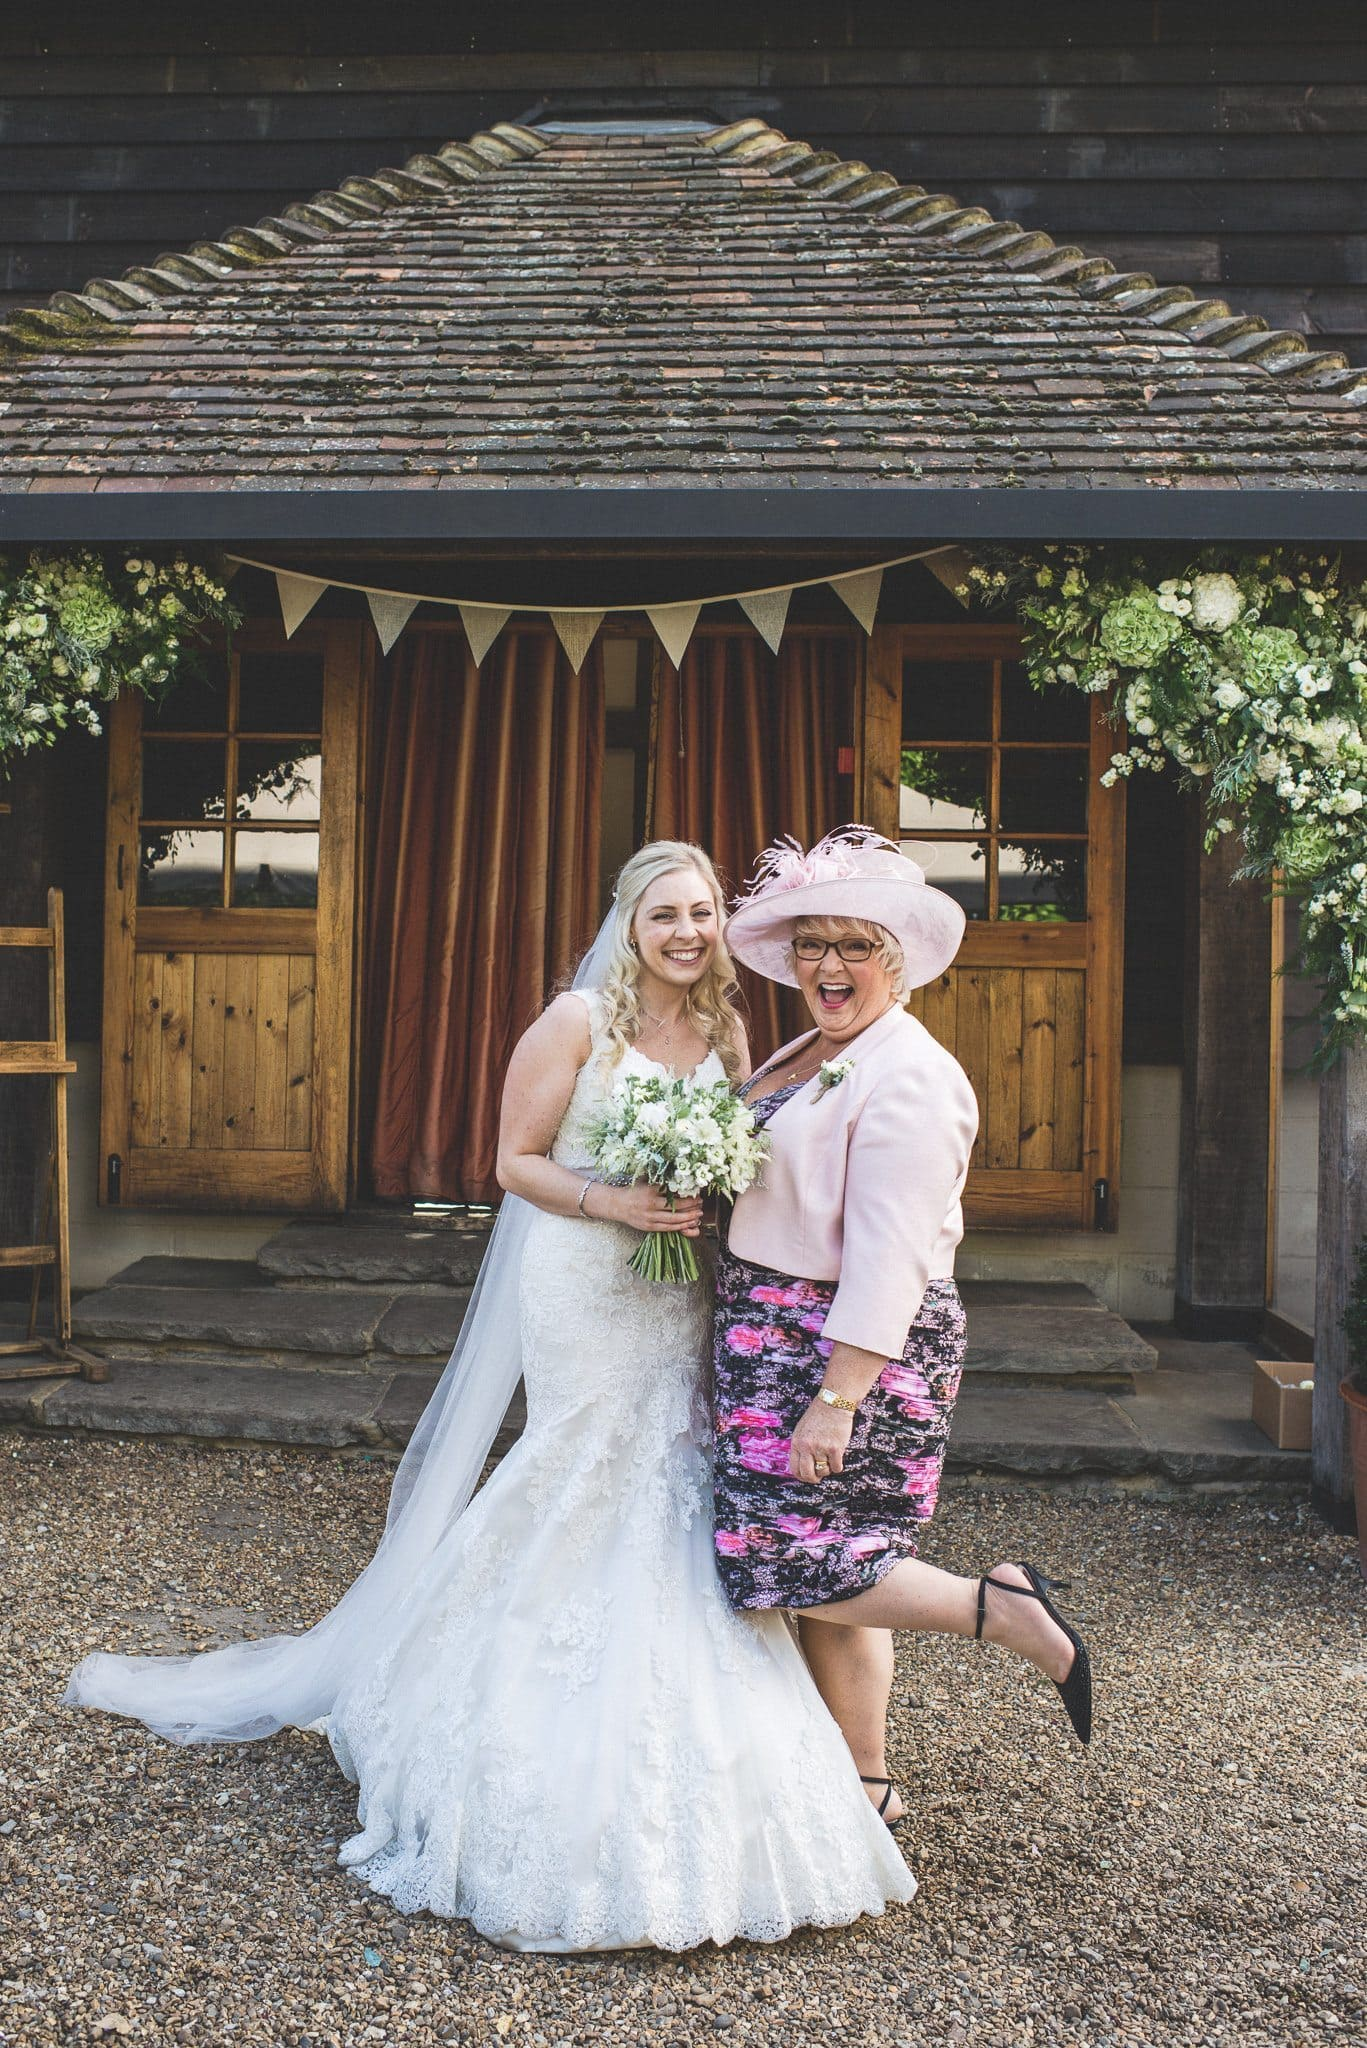 Newly married Emma poses with her mum, both grin at the camera